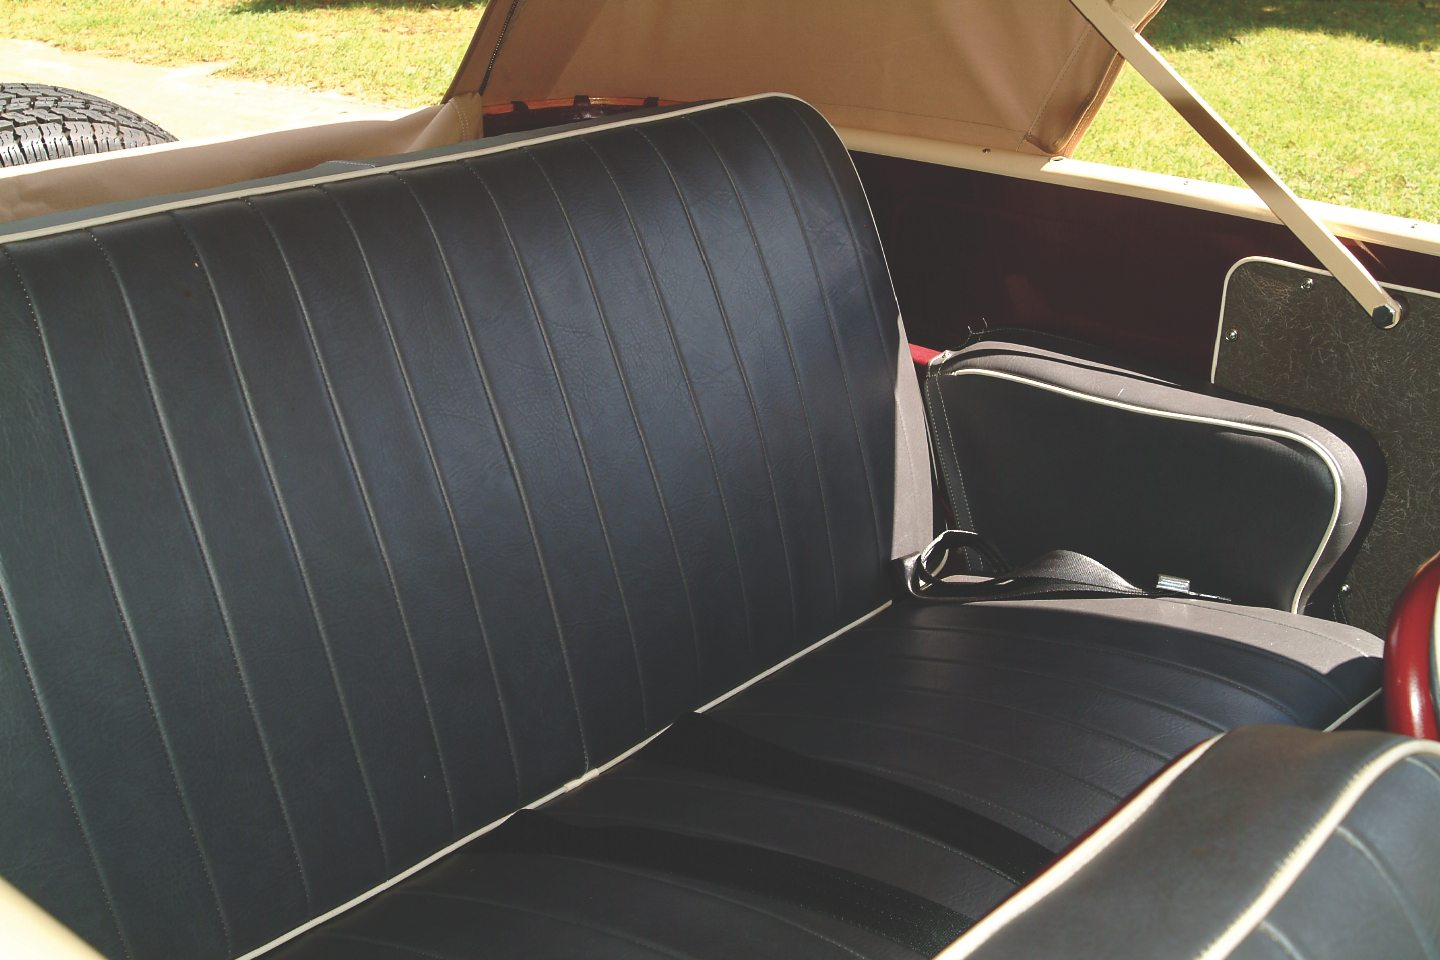 hight resolution of 1949 willys overland jeepster backseat